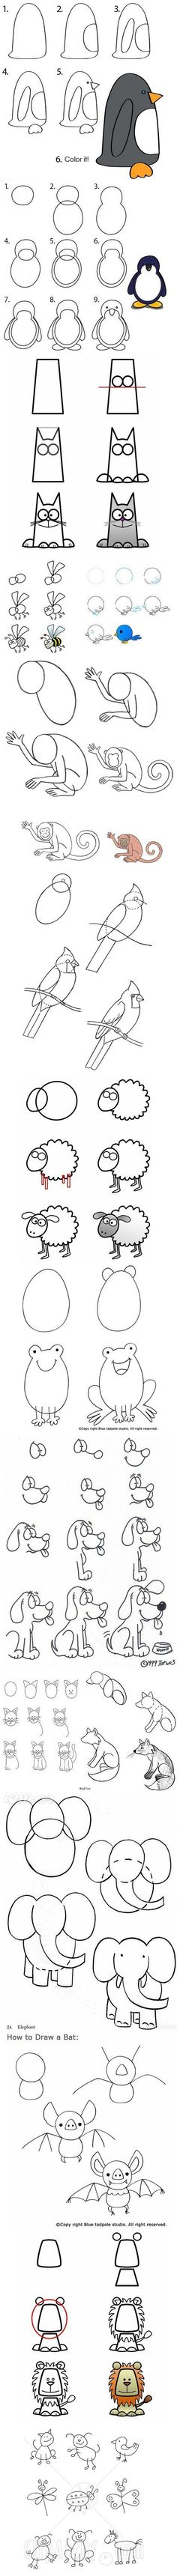 How to draw animals. You never know when this will come in handy.